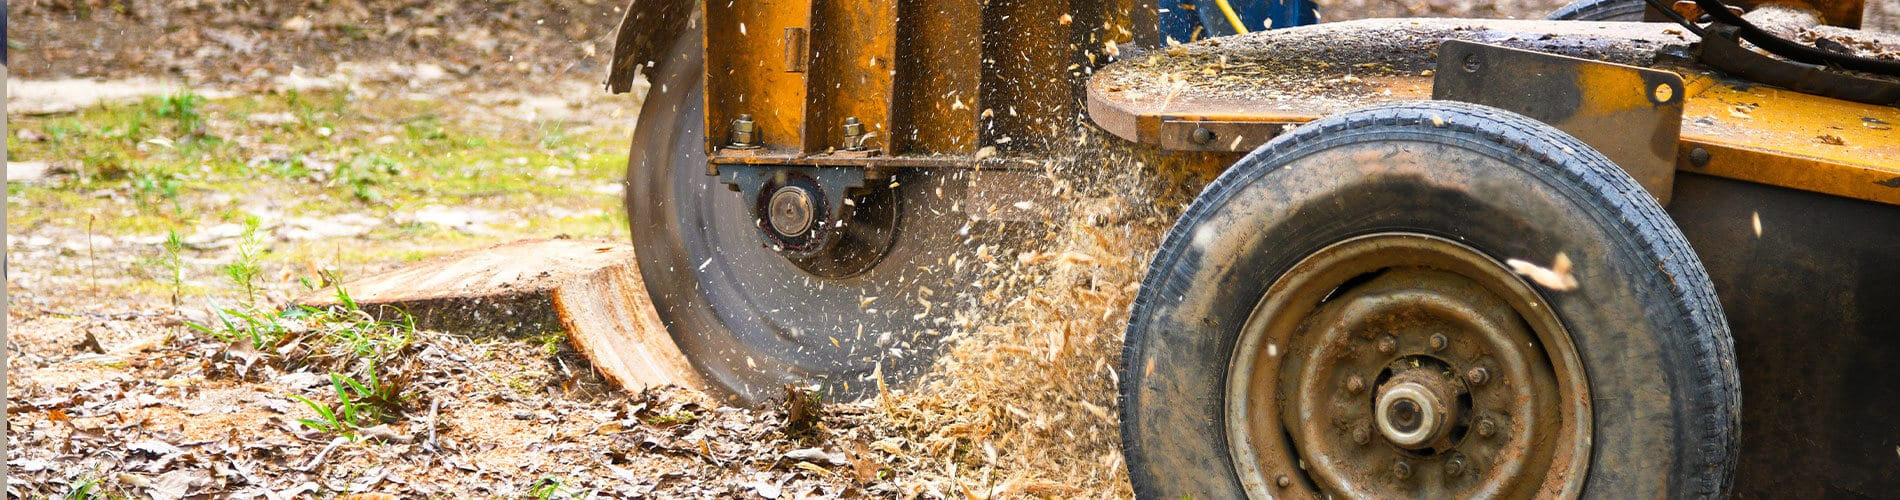 stump grinding services near williamson county il